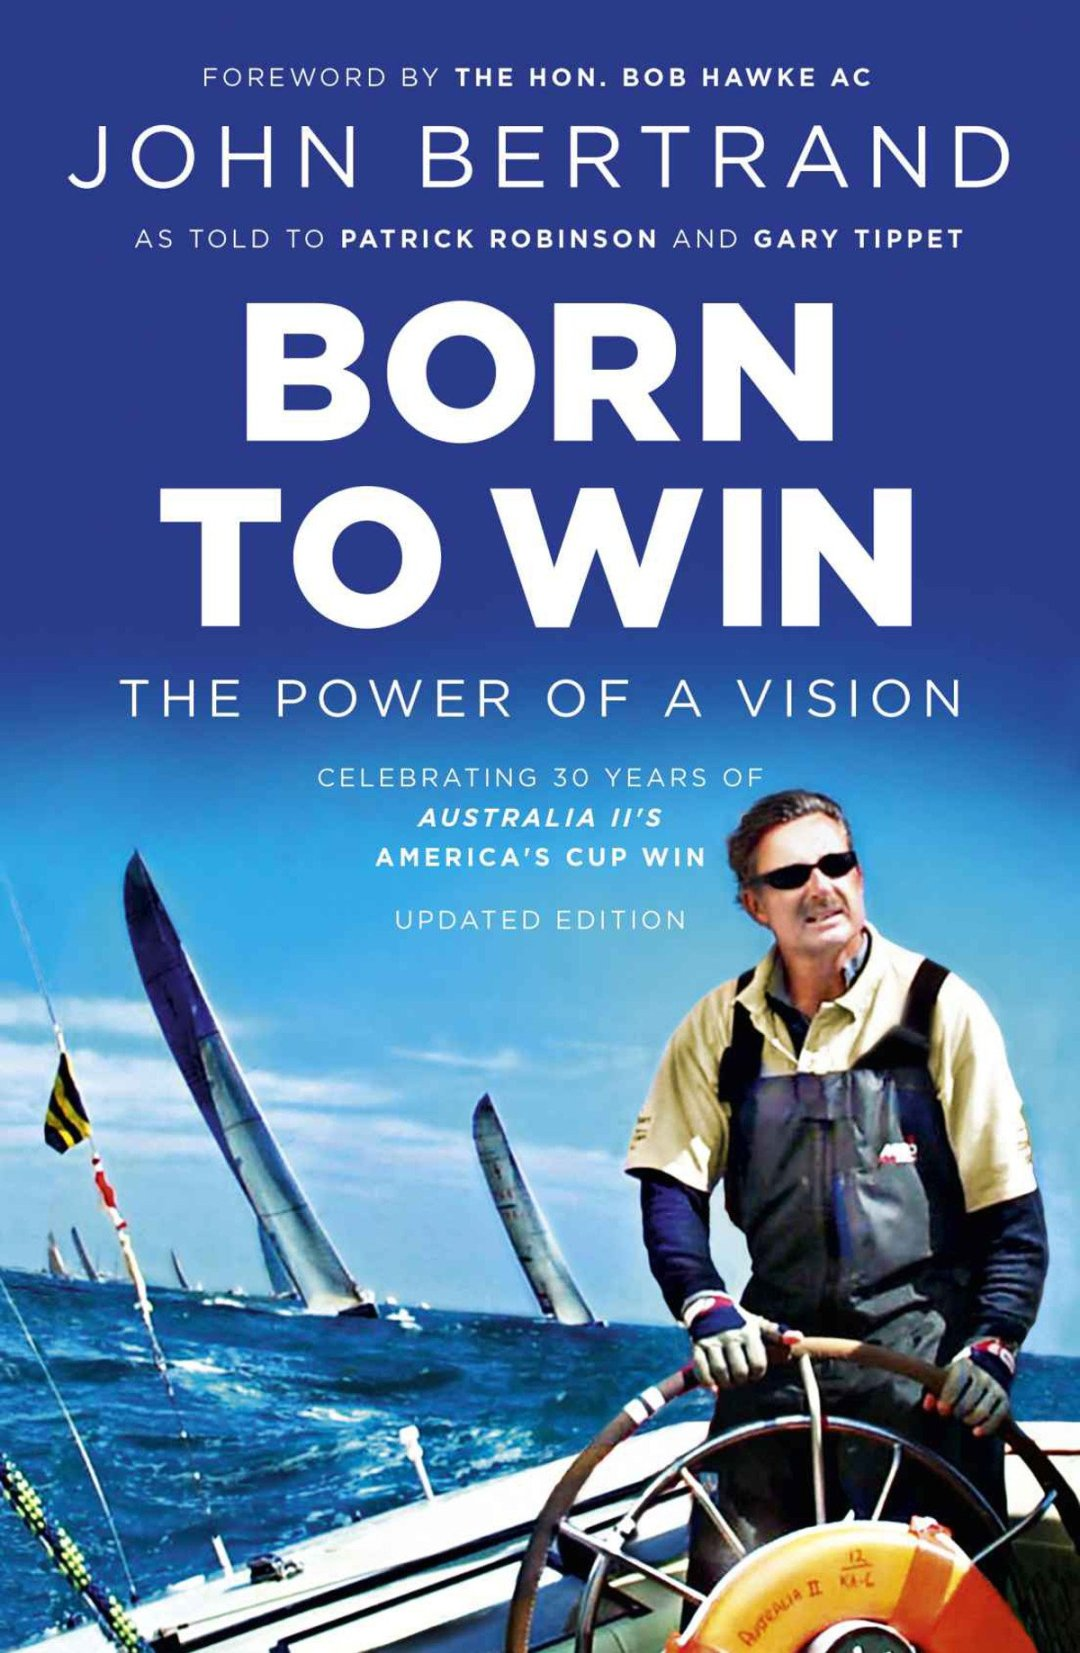 Born to Win - John Bertrand Double-barrelled Travel